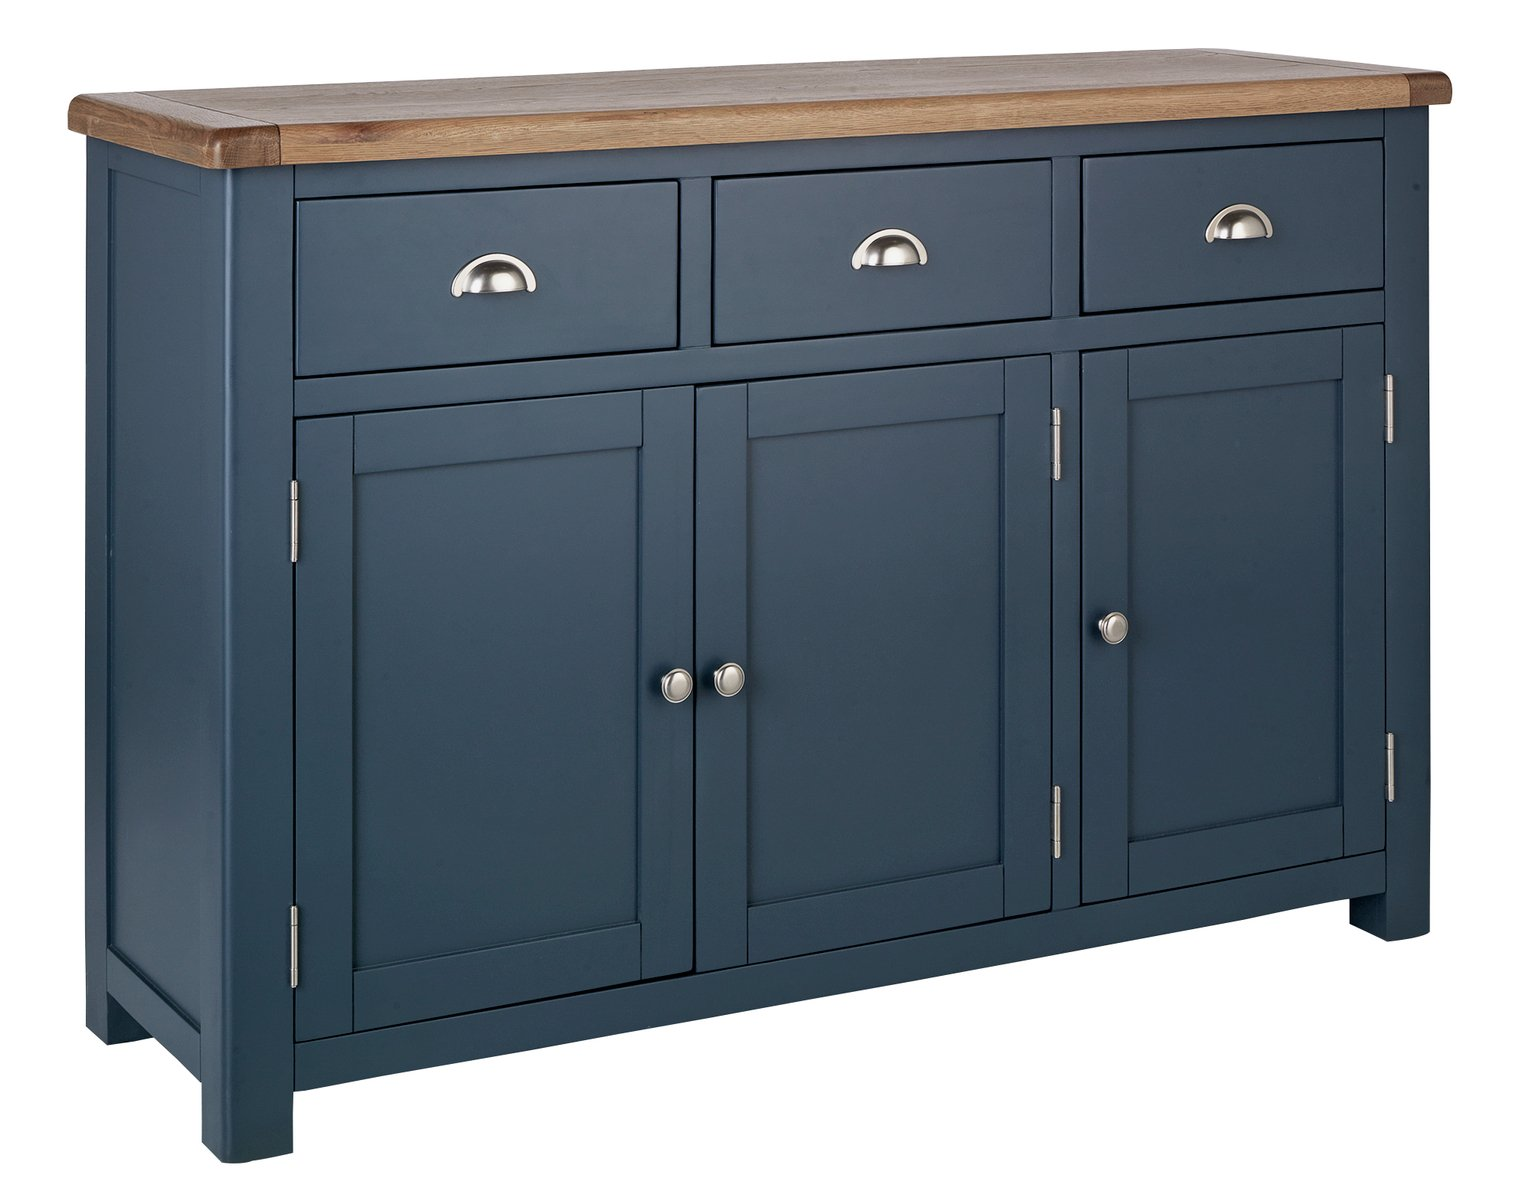 Argos Home Kent 3 Door Large Oak Veneer Sideboard review